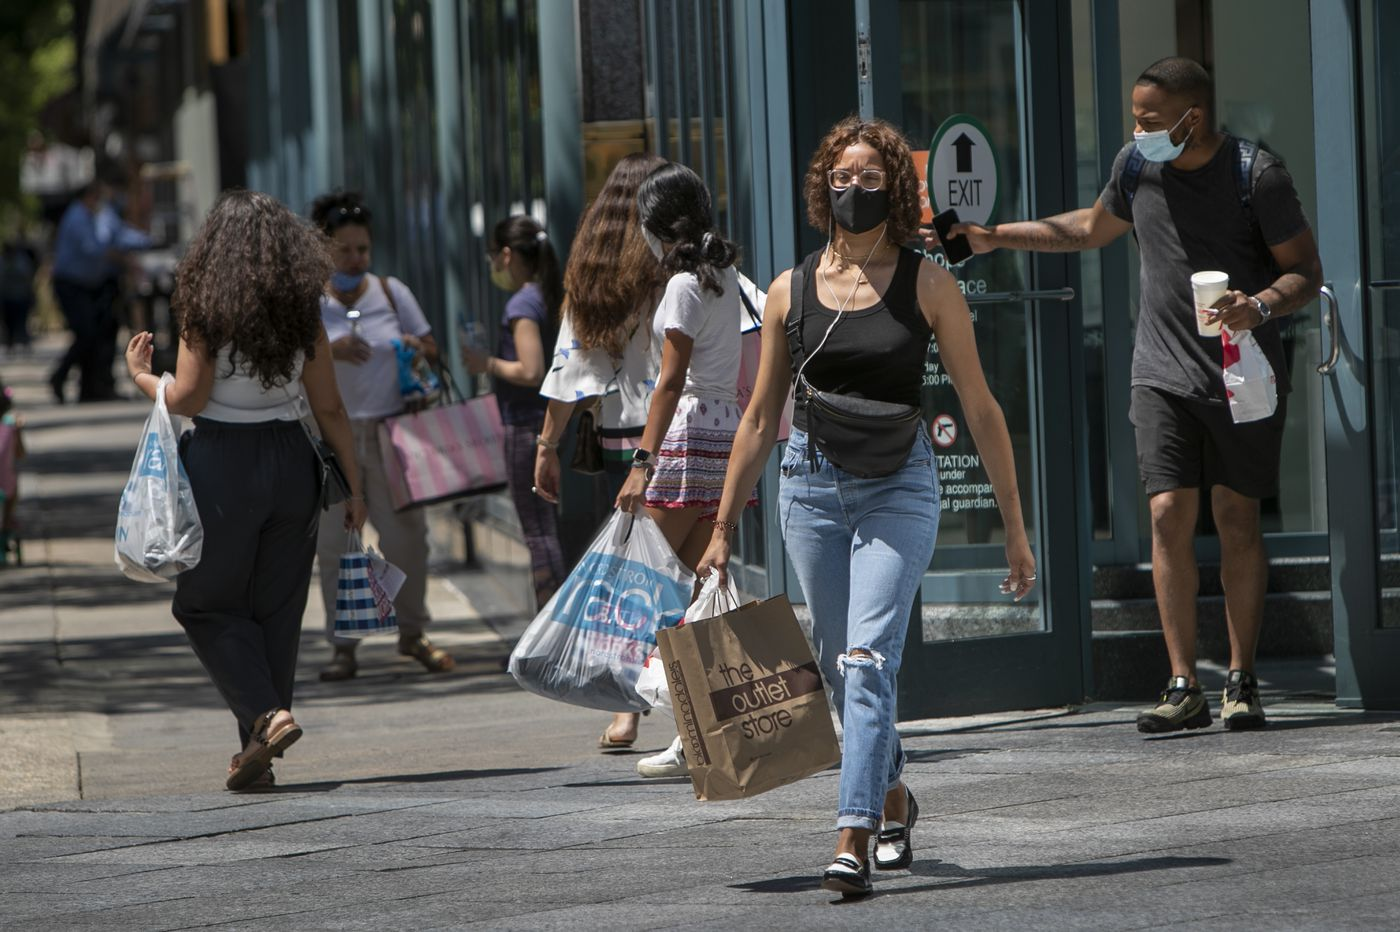 N.J. tightens indoor restrictions and requires face masks for students; Pa. food safety inspectors to enforce COVID-19 rules